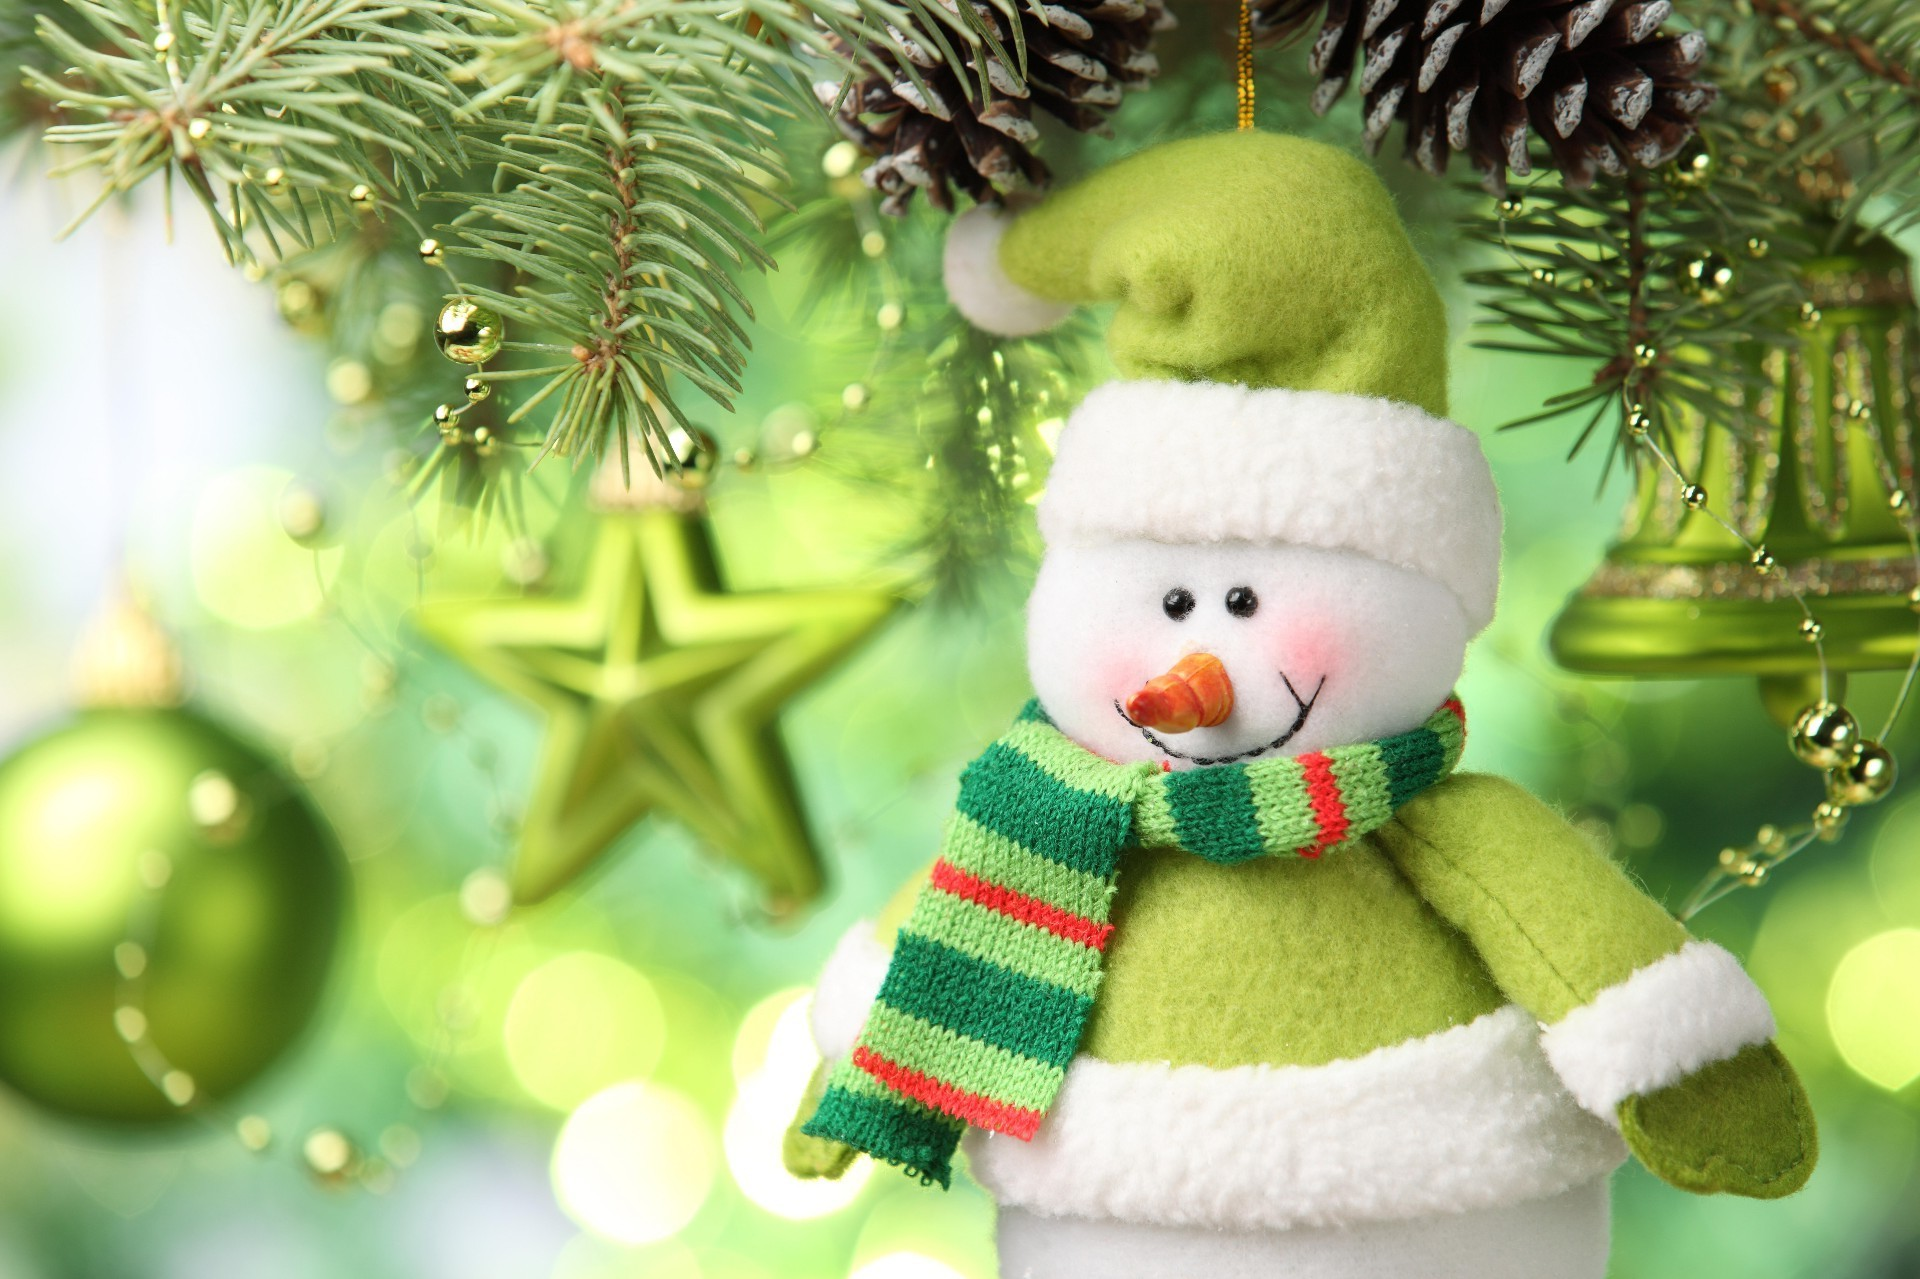 Snowman in green clothes